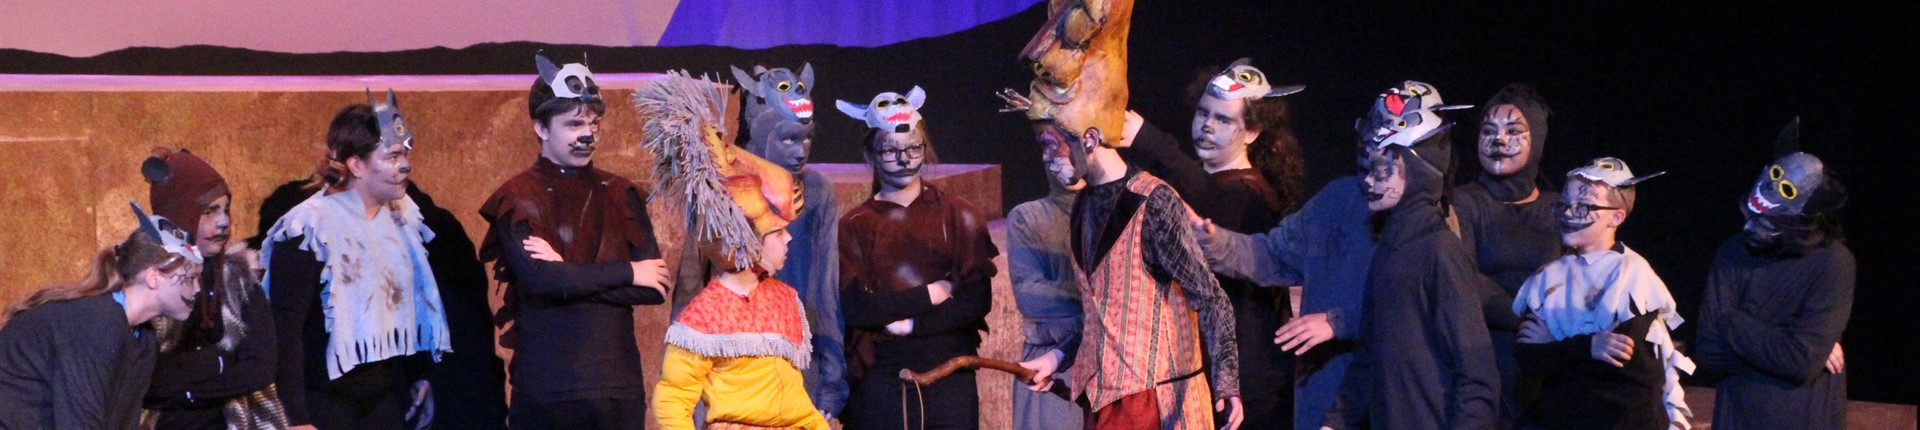 Bourbon Middle School Lion King Play